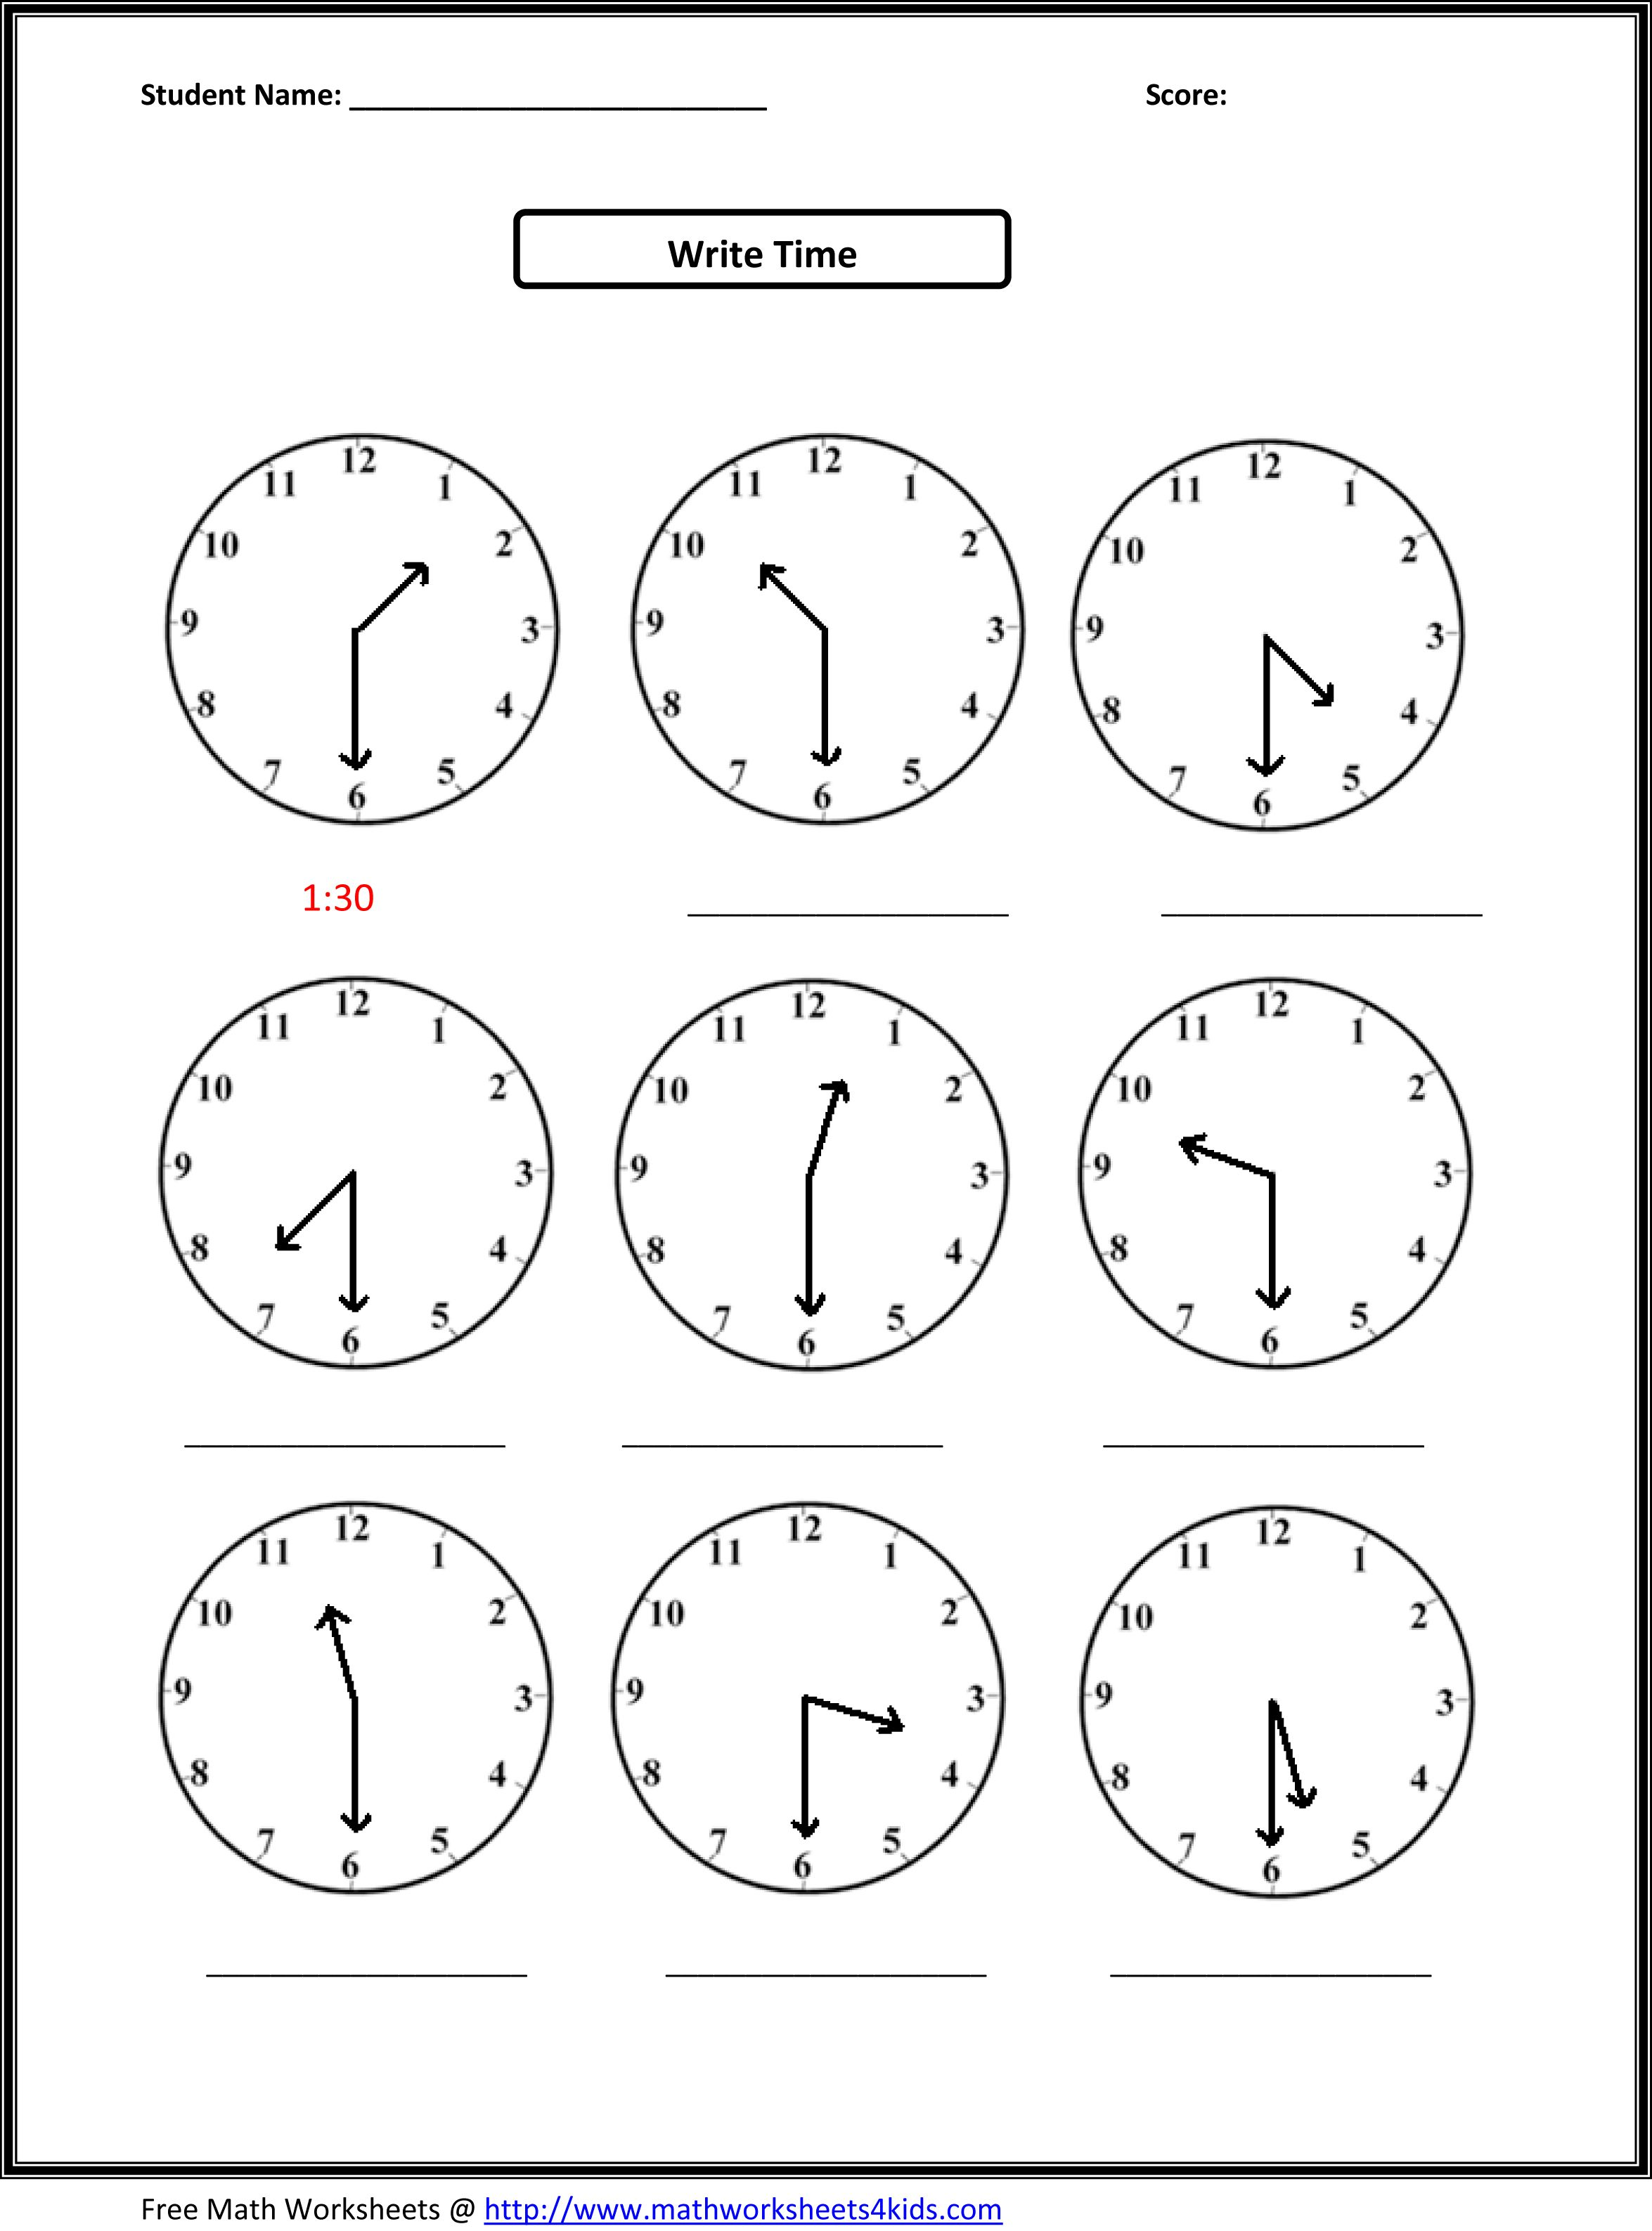 Weirdmailus  Gorgeous Worksheet On Time For Grade   Reocurent With Exciting Free Printable Telling Time Worksheets Nd Grade  Reocurent With Amazing Water Cycle Quiz Worksheet Also Finding Mean Worksheets In Addition Nervous System Diagram Worksheet And Grade  Math Worksheet As Well As Teaching Fractions Worksheets Additionally Cash Flow Budget Worksheet From Reocurentcom With Weirdmailus  Exciting Worksheet On Time For Grade   Reocurent With Amazing Free Printable Telling Time Worksheets Nd Grade  Reocurent And Gorgeous Water Cycle Quiz Worksheet Also Finding Mean Worksheets In Addition Nervous System Diagram Worksheet From Reocurentcom